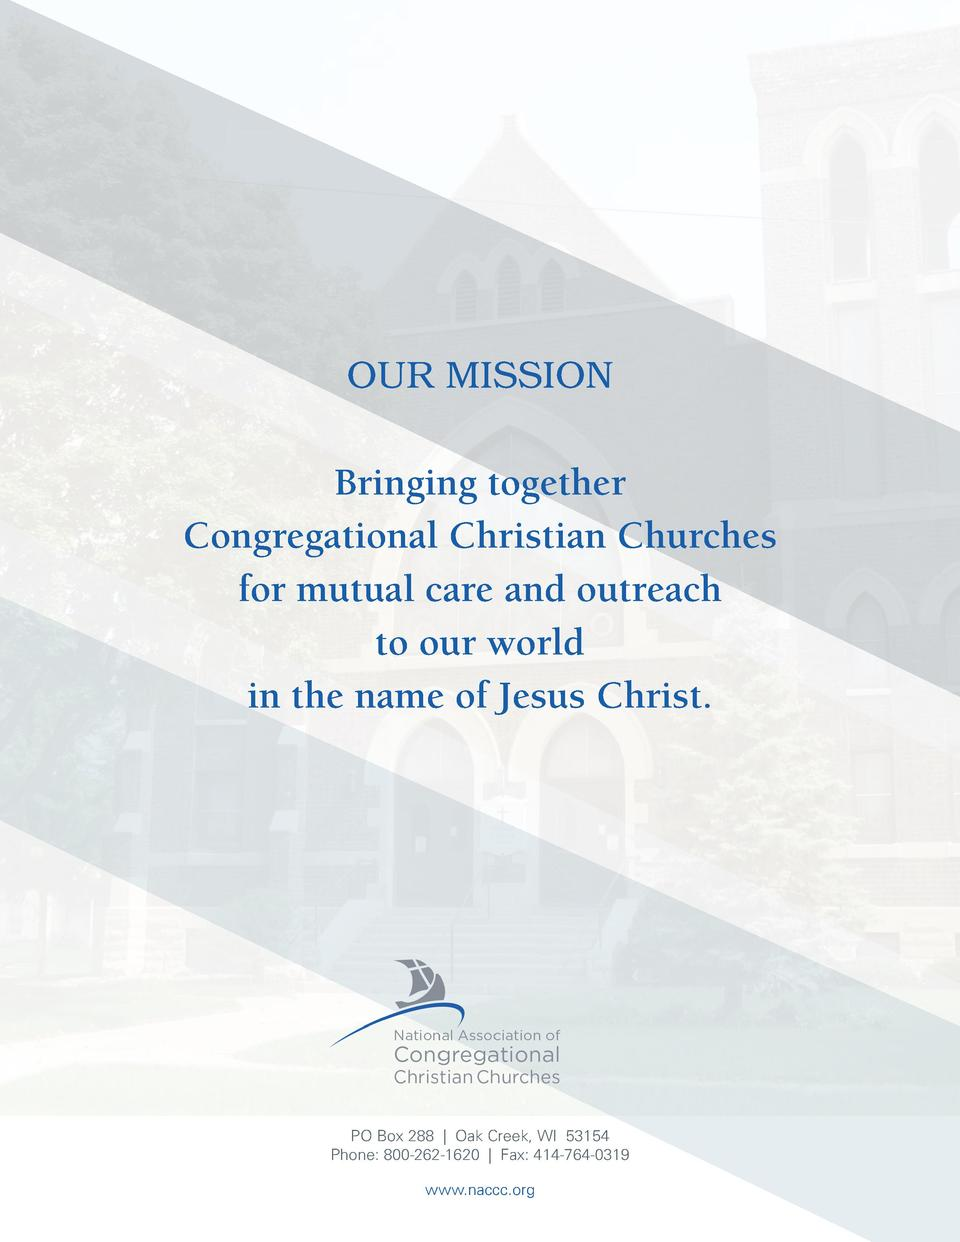 OUR MISSION  Bringing together Congregational Christian Churches for mutual care and outreach to our world in the name of ...